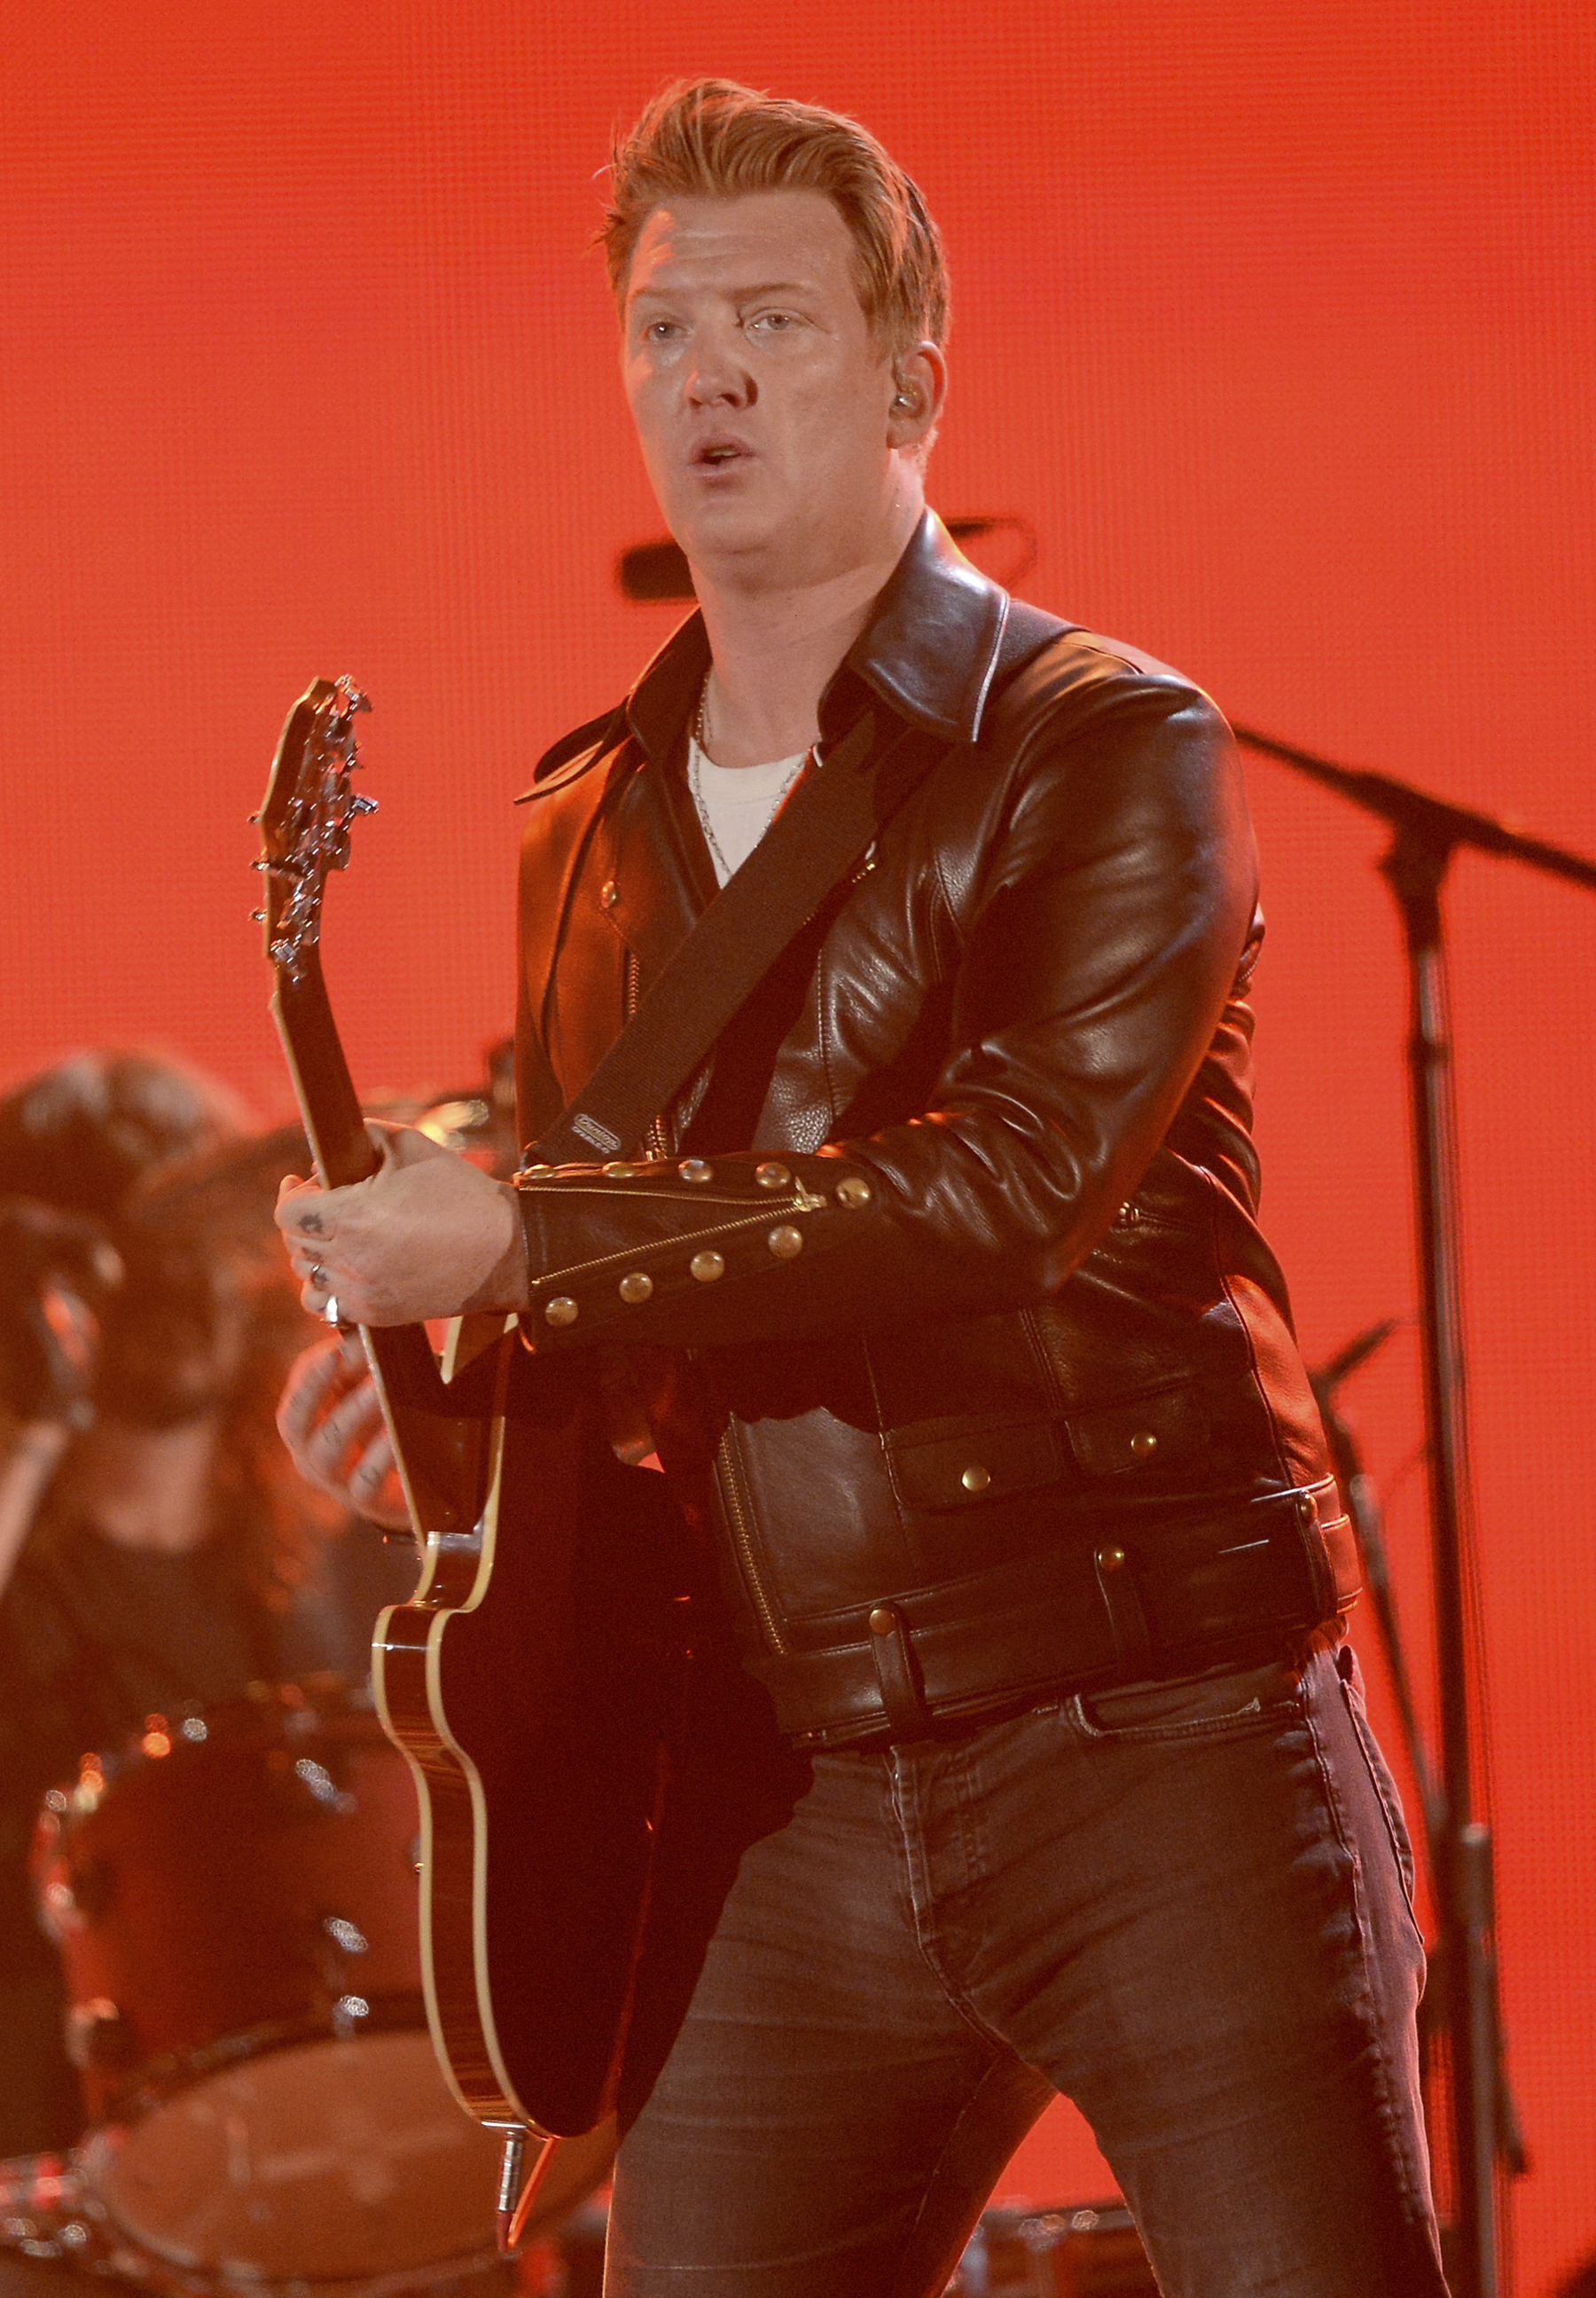 Queens of the Stone Age Thrash Grammys With Dave Grohl, Trent Reznor